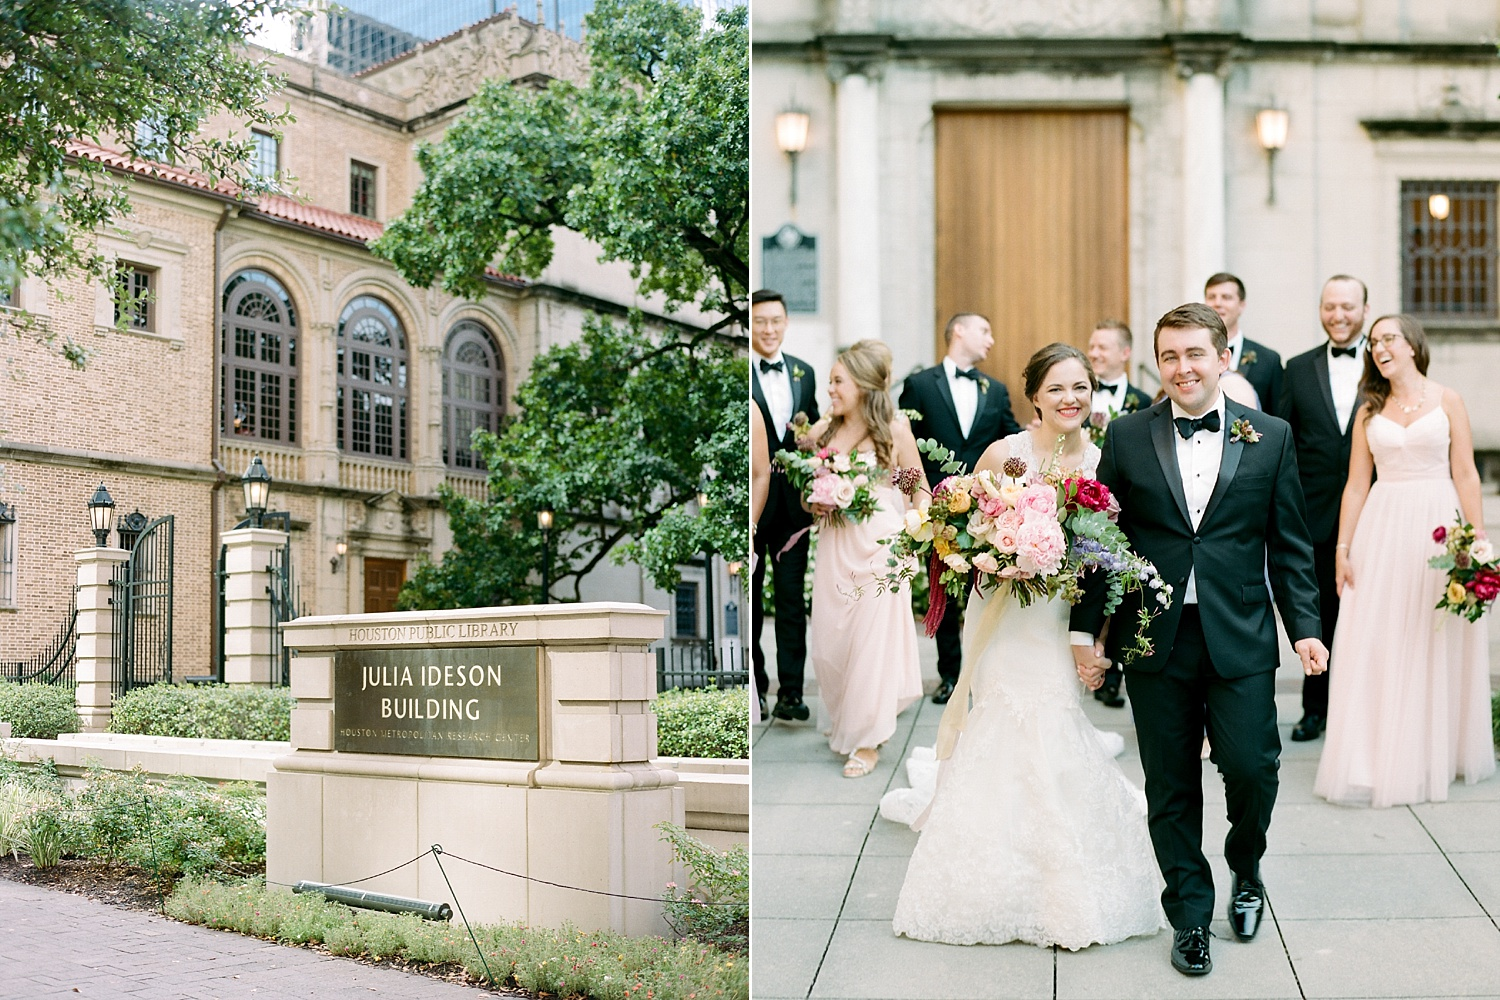 Julia-Ideson-Library-Wedding-Houston-Wedding-Photographer-Fine-Art-Film-Best-Top-Dana-Fernandez-Photography-Wedding-Venue-105.jpg